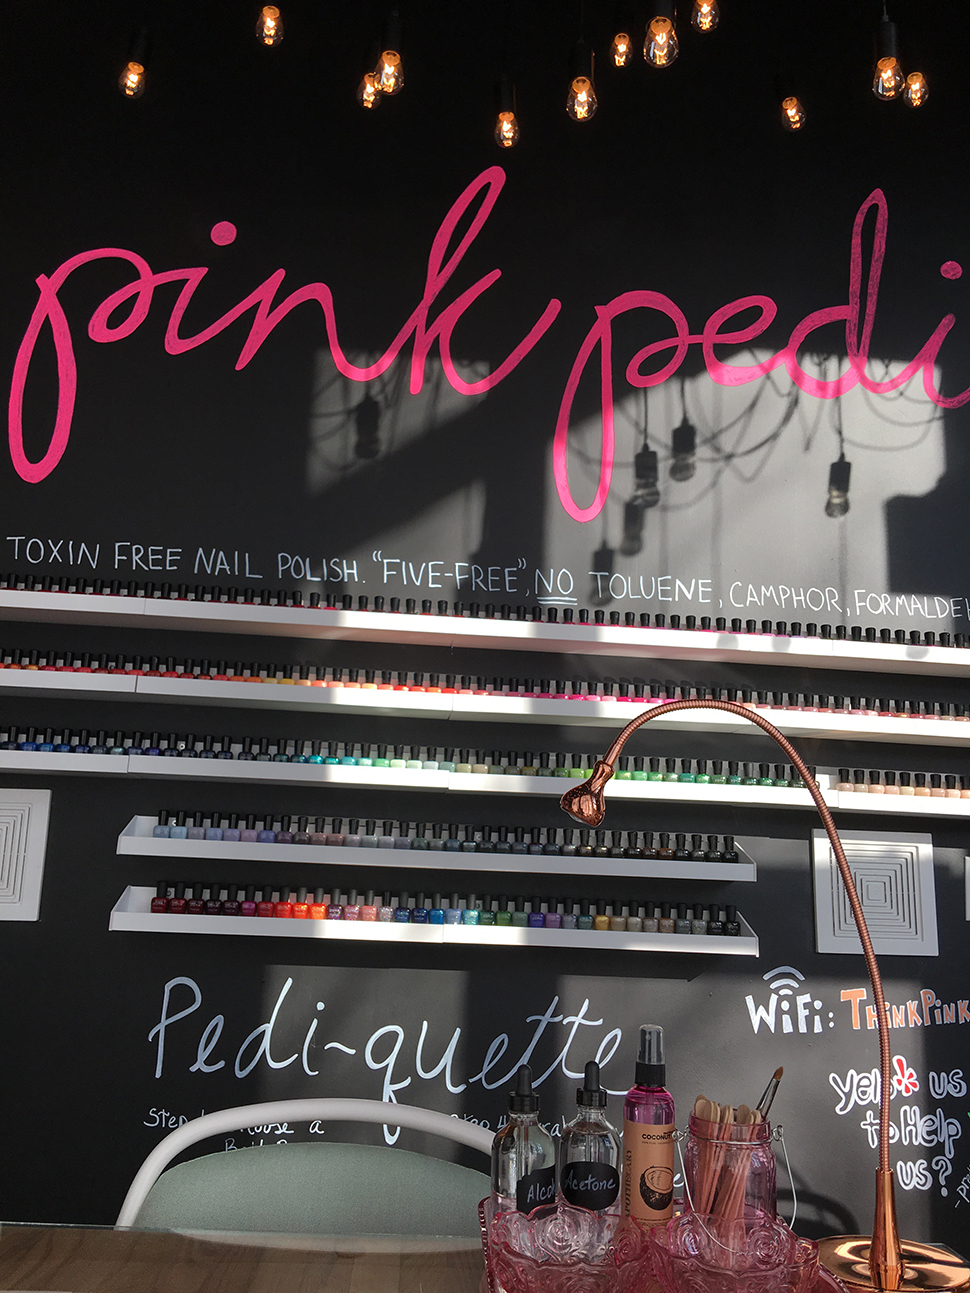 Pink Pedi is the first nail salon in Dallas to exclusively carry the entire nail polish lines of OPI's Infinite Shine hybrid polish collection and Zoya, a polish line free of all cancer-causing chemicals commonly found in nail polish.